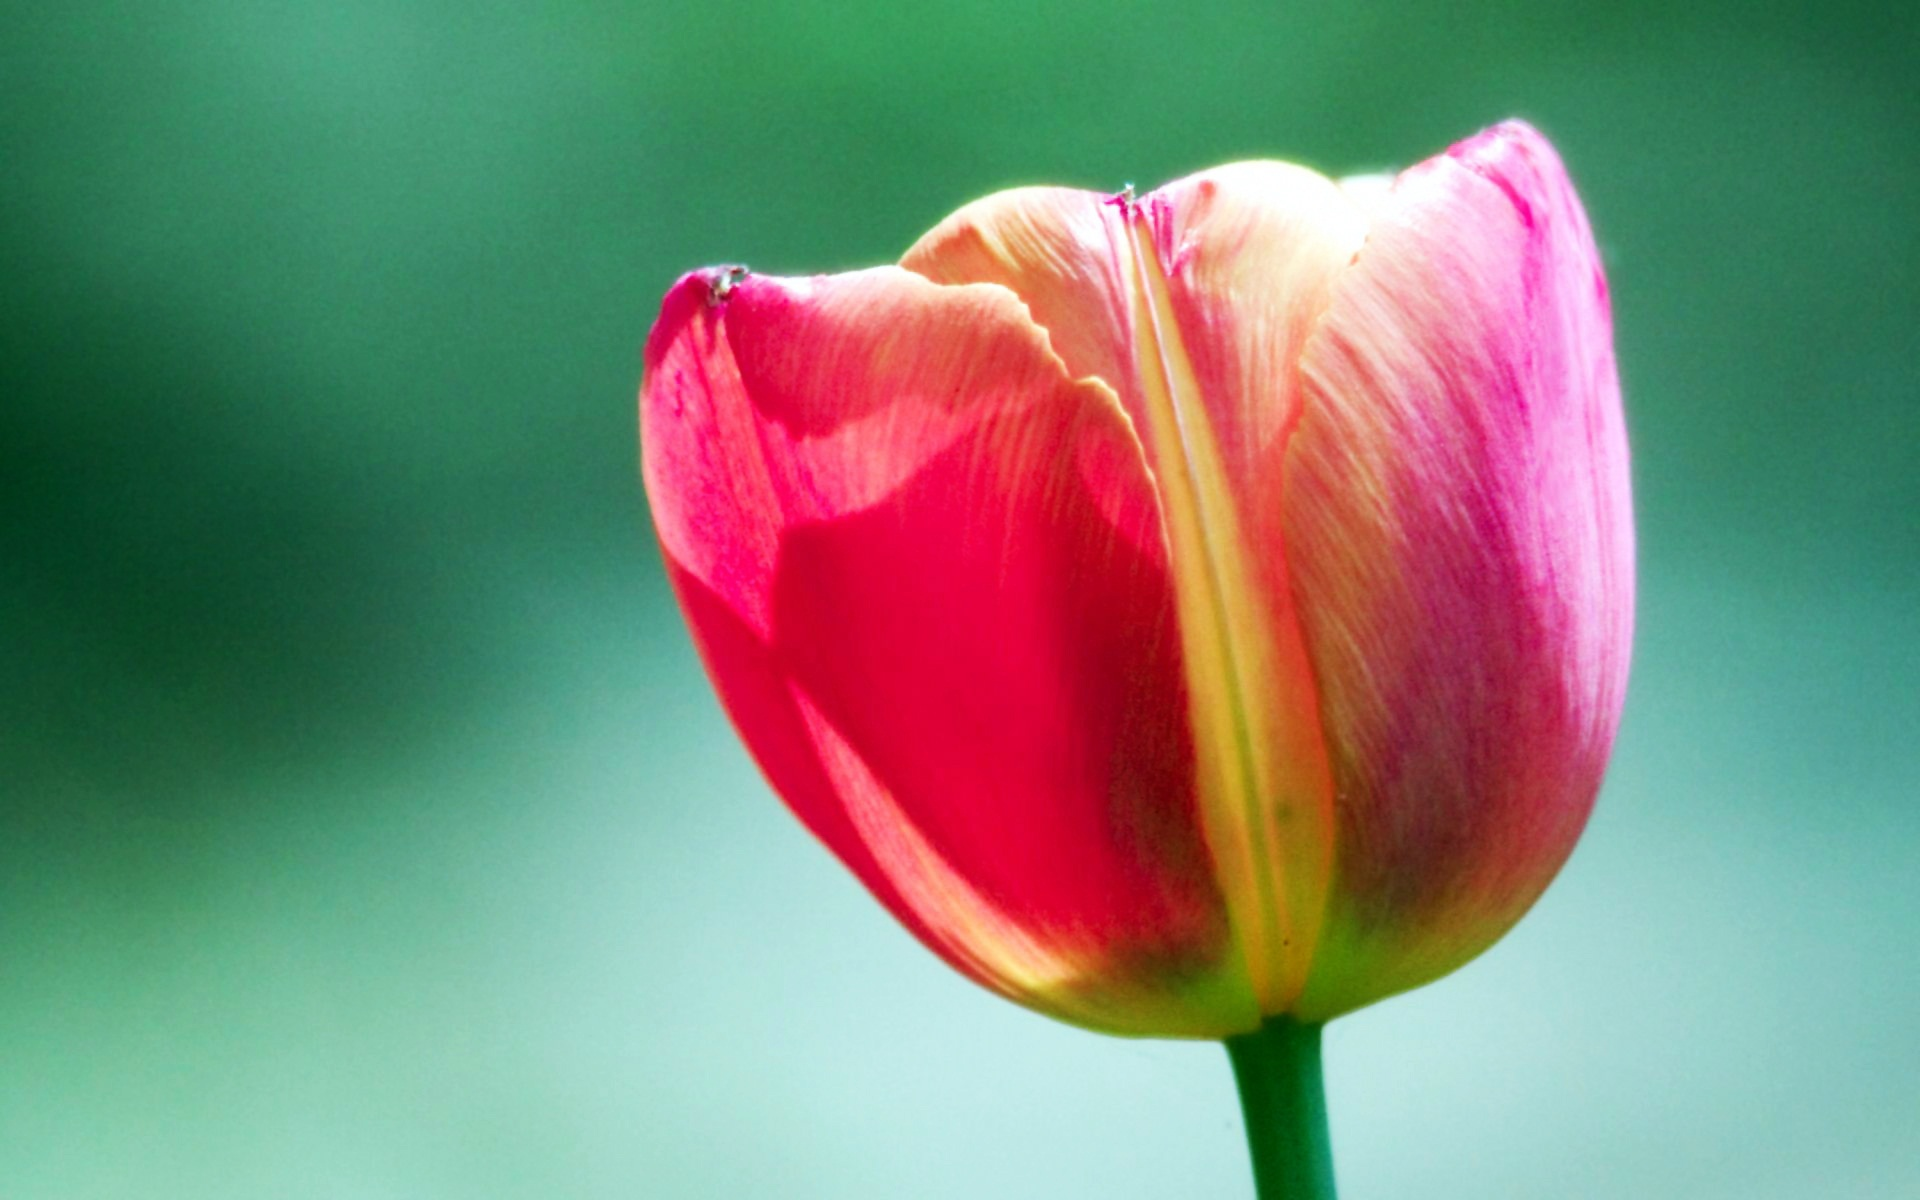 Pink Tulip Flower 4207682 1920x1200 All For Desktop